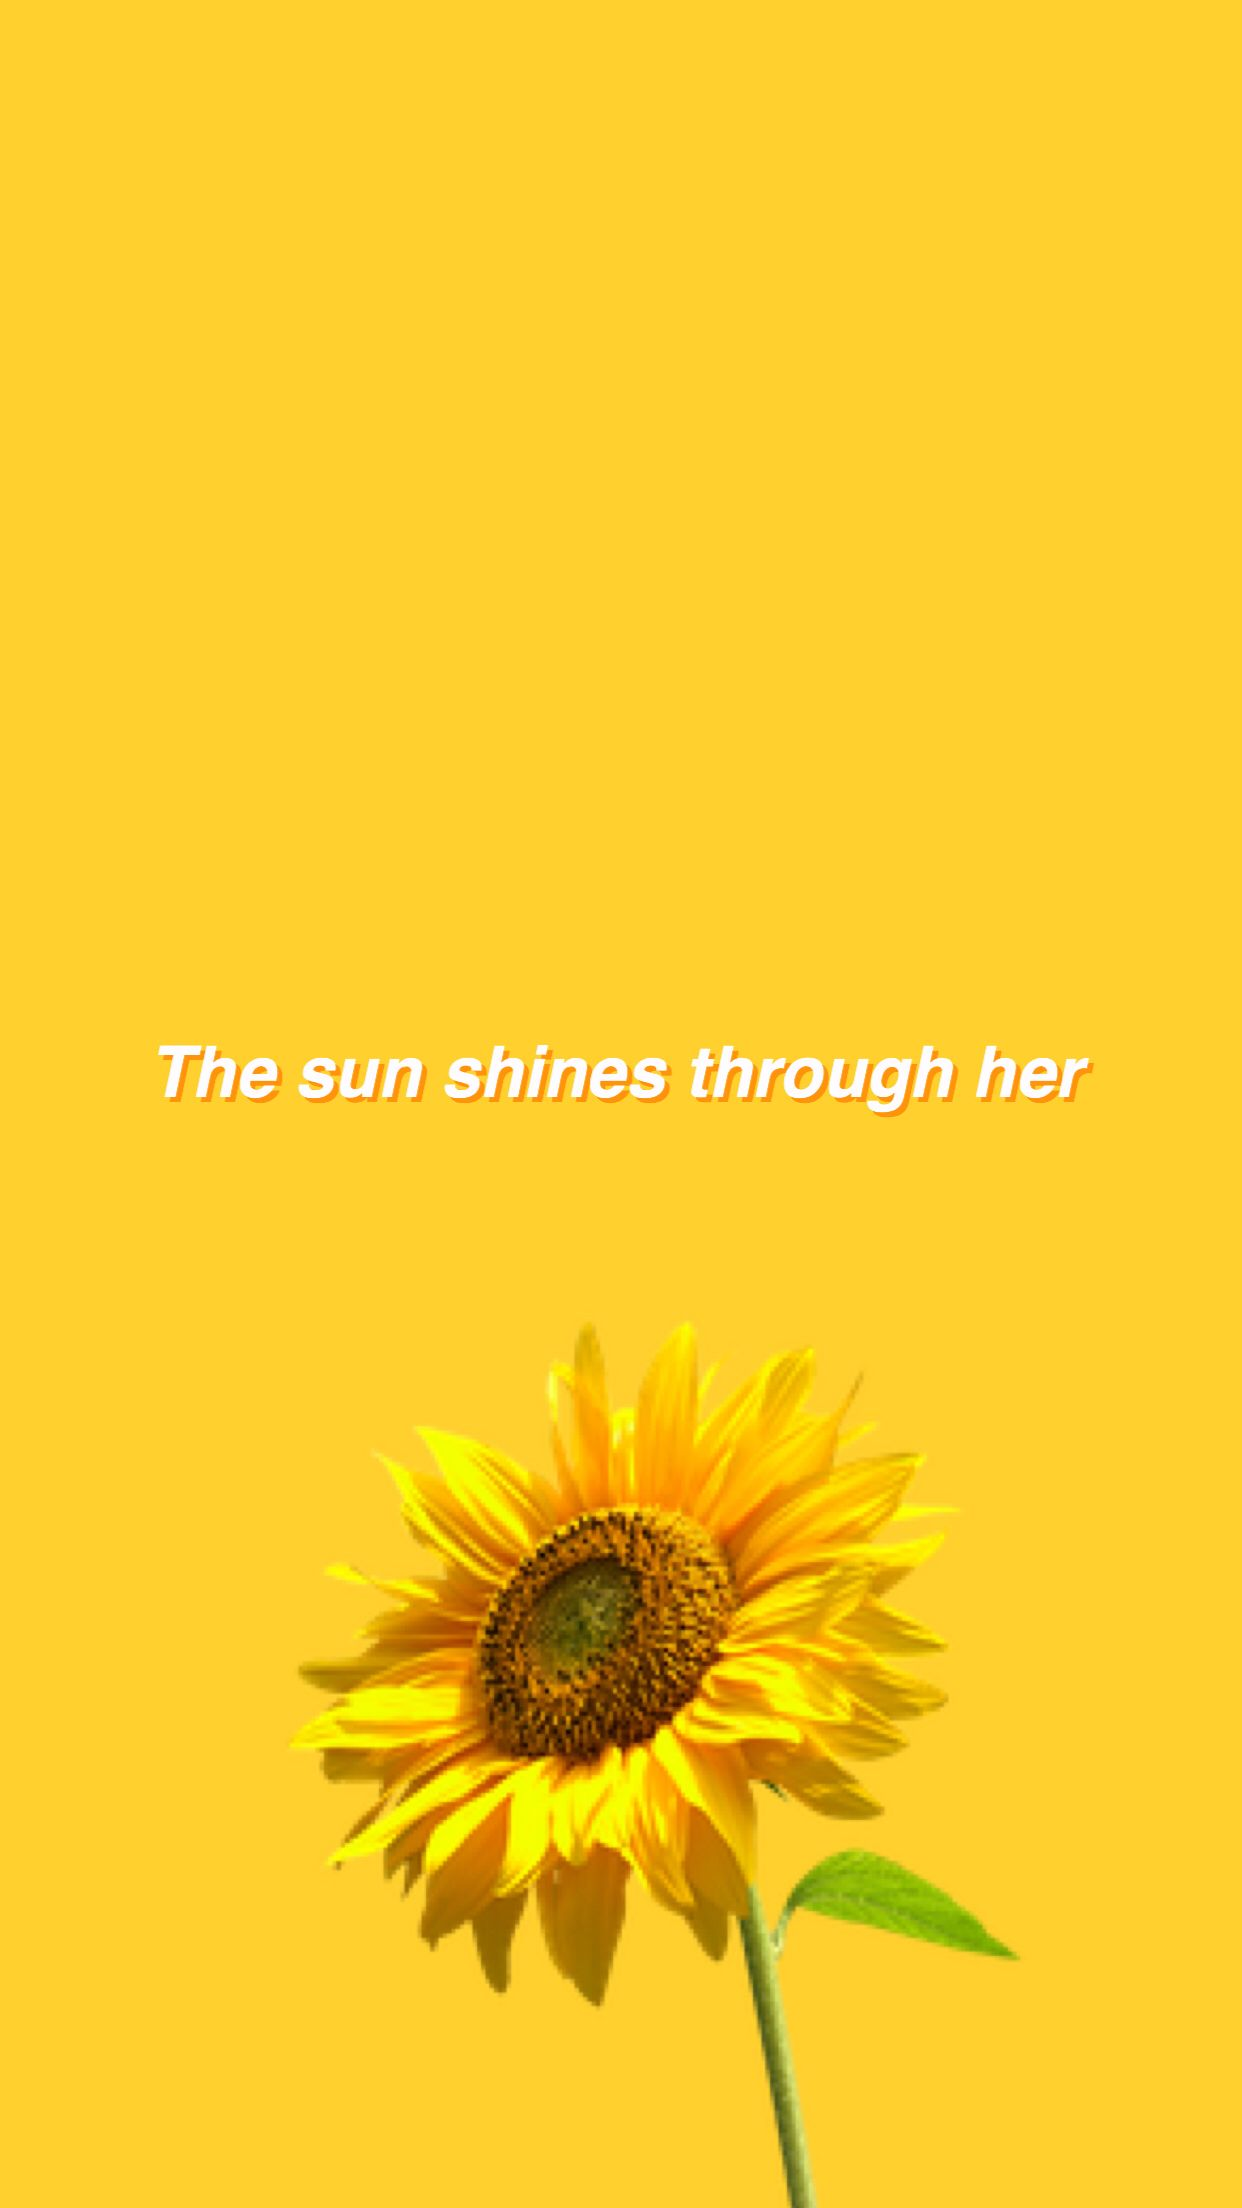 Pin By Chelsea Mcintyre On A R T S Y Yellow Wallpaper Yellow Aesthetic Nature Photography Quotes